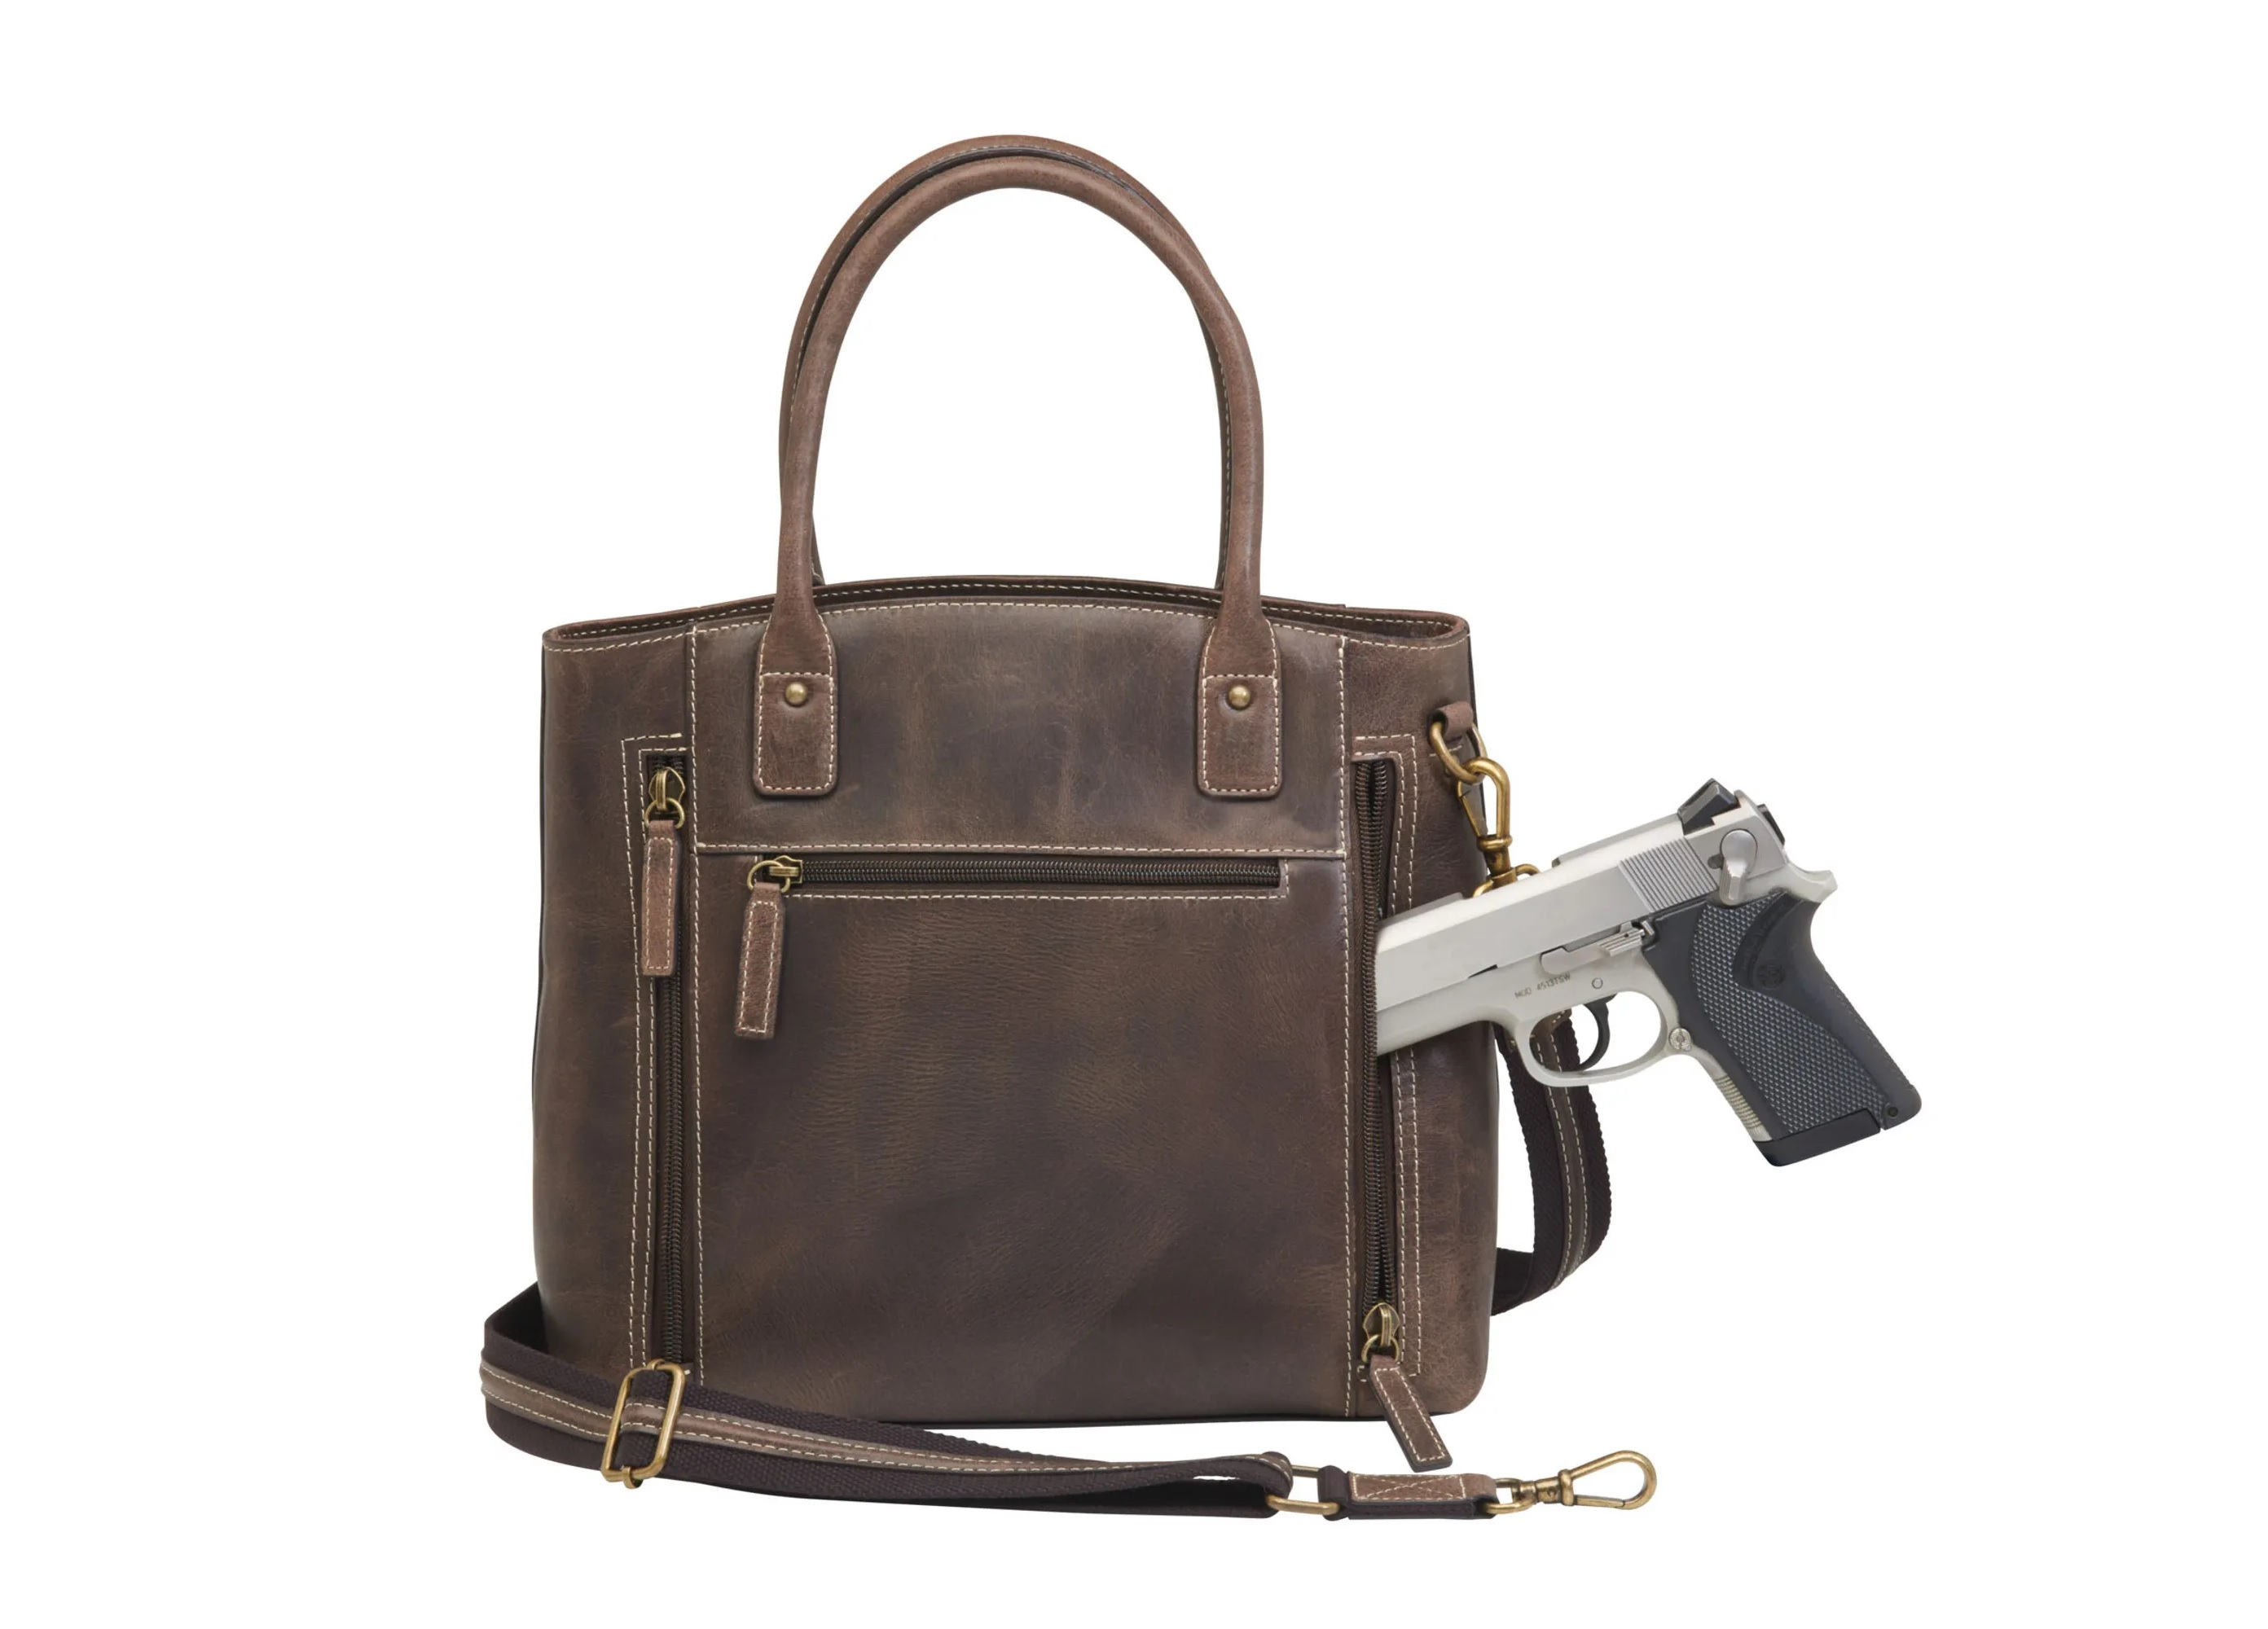 New Concealed Carry Handbags for Women from Primary Arms